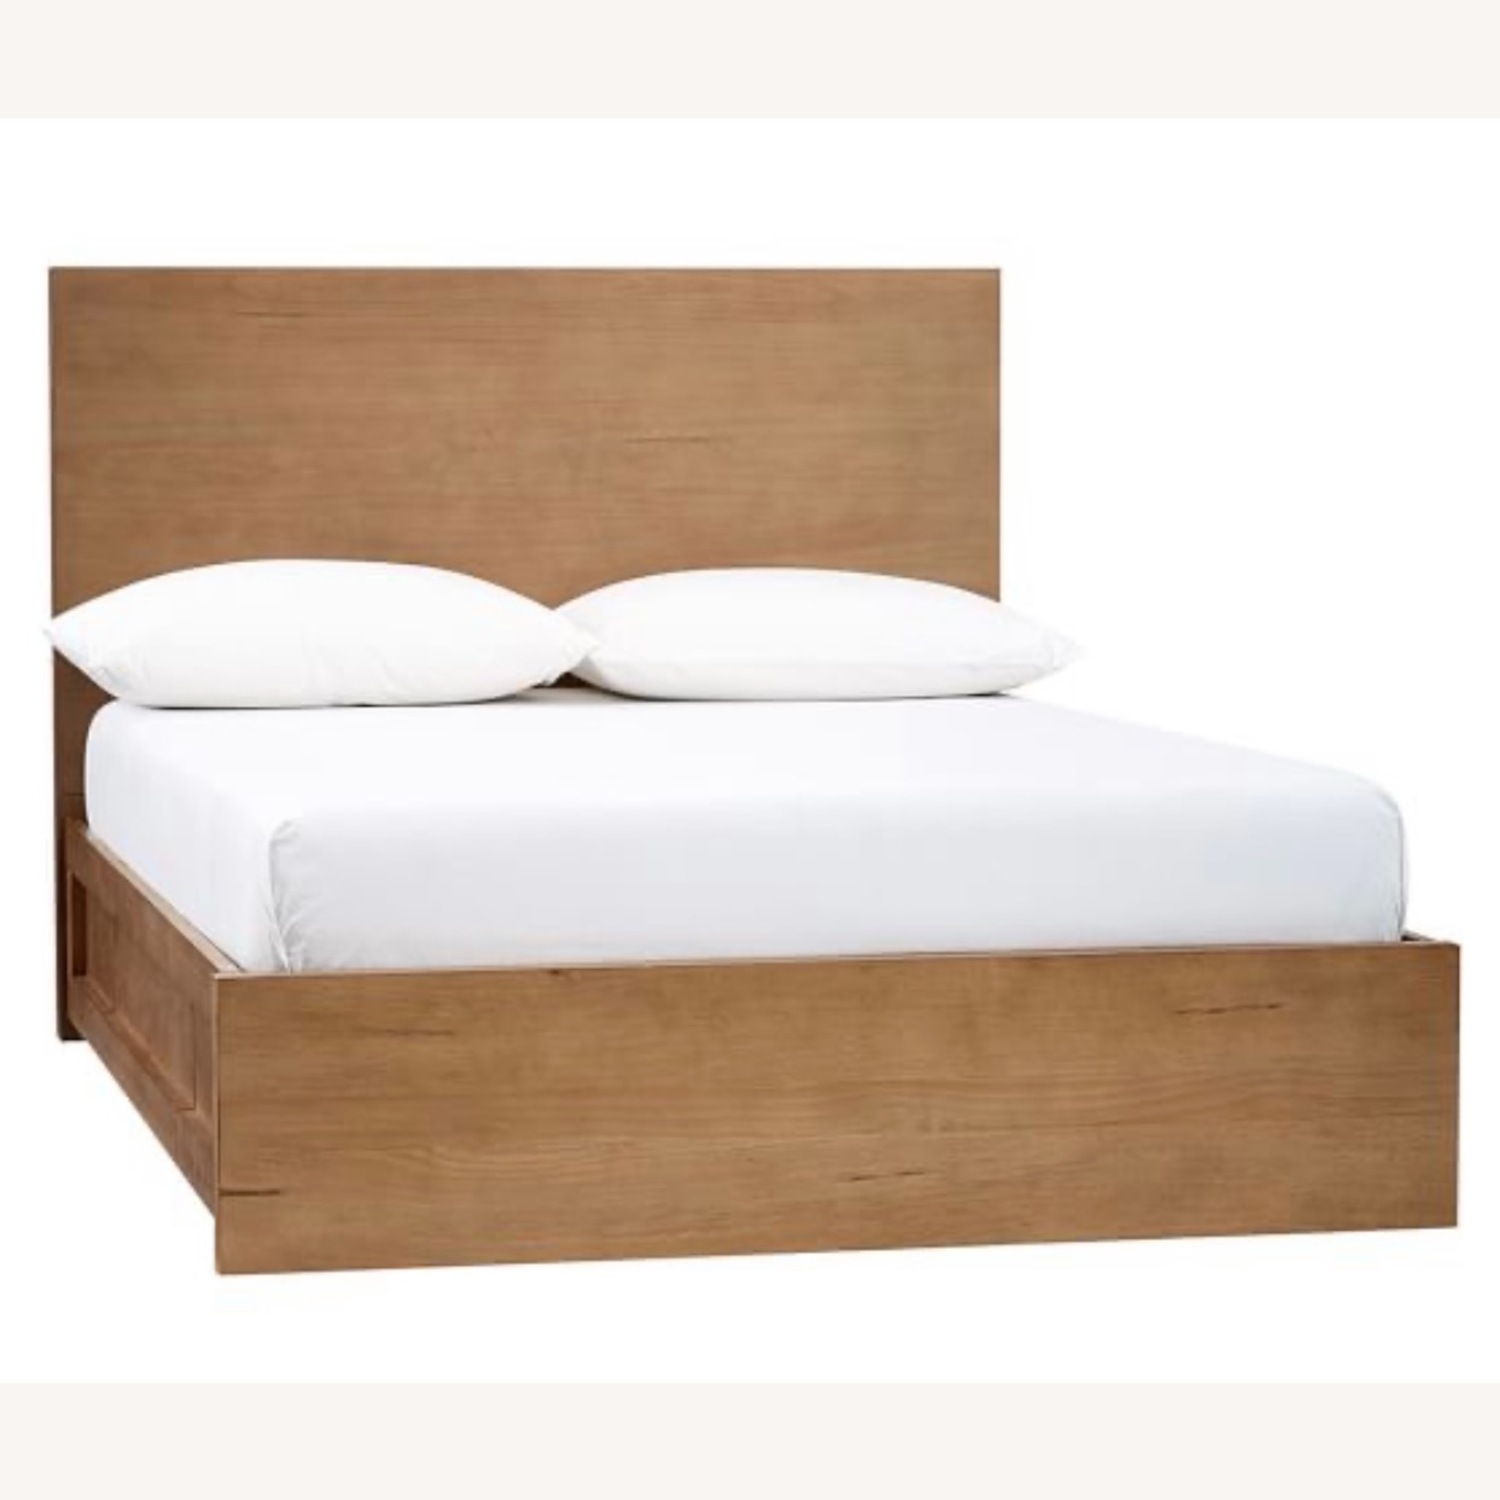 Pottery Barn Full Size Dover Storage Bed - image-2